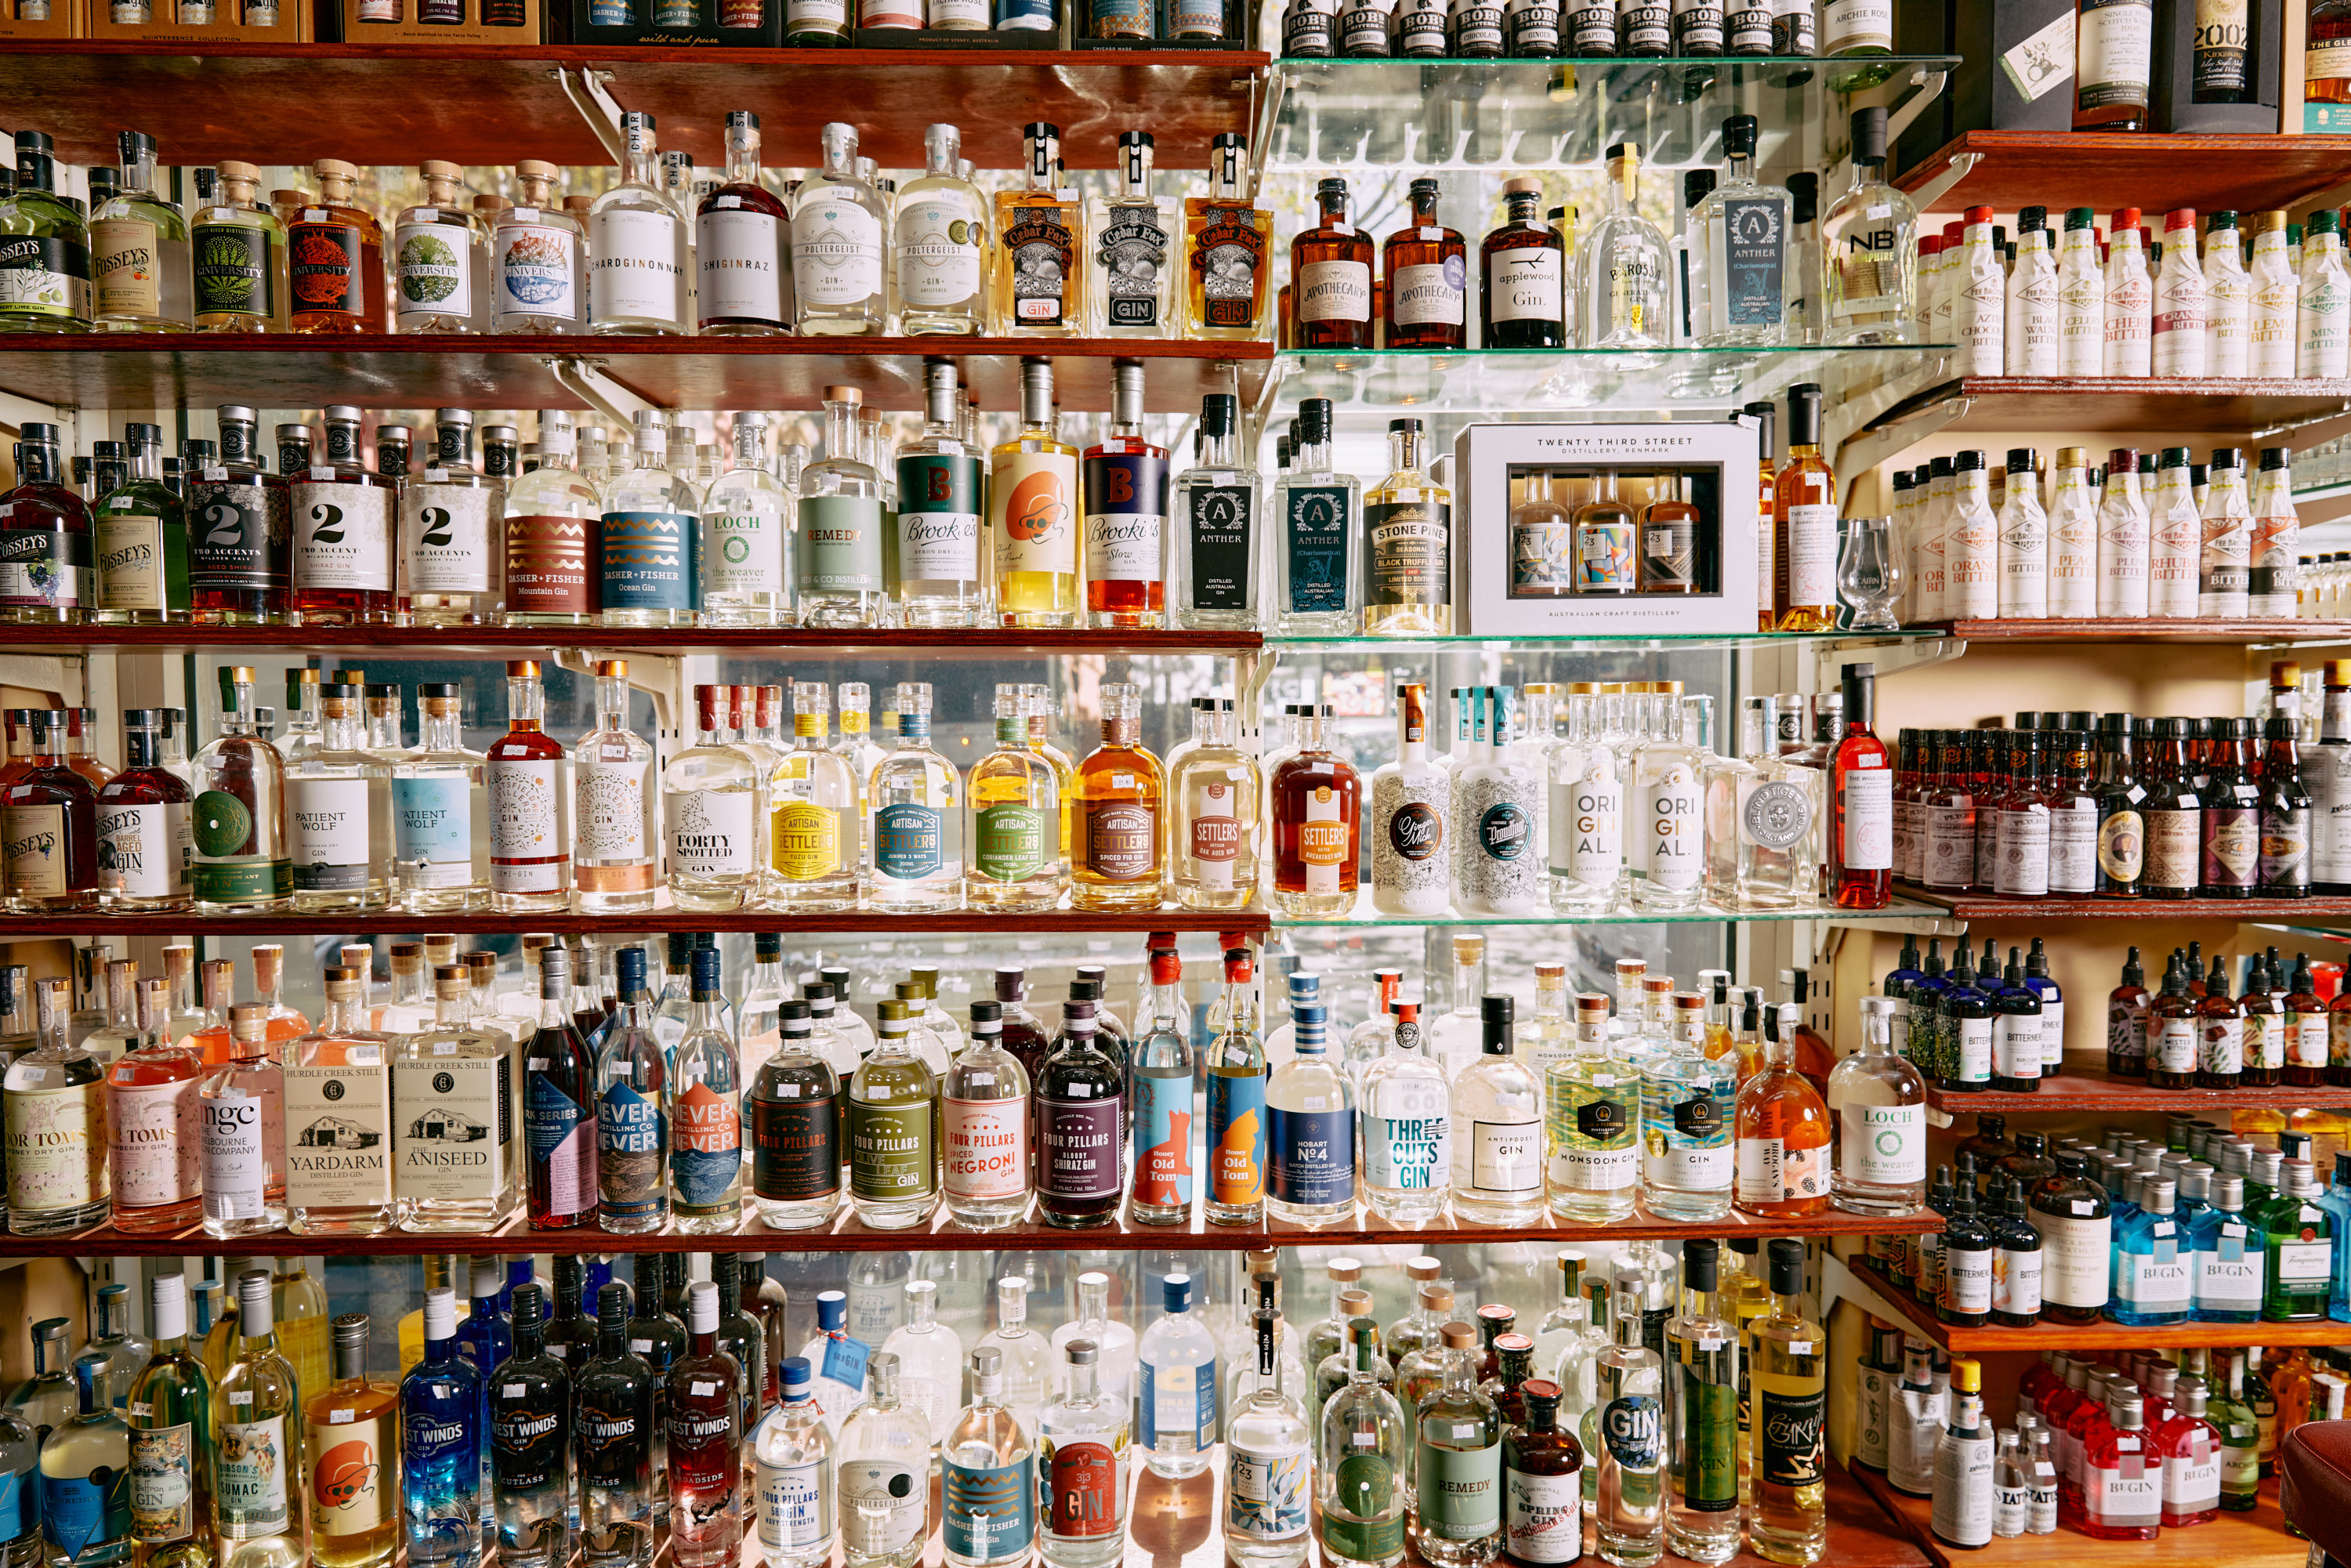 Several shelves stacked with fine liquor